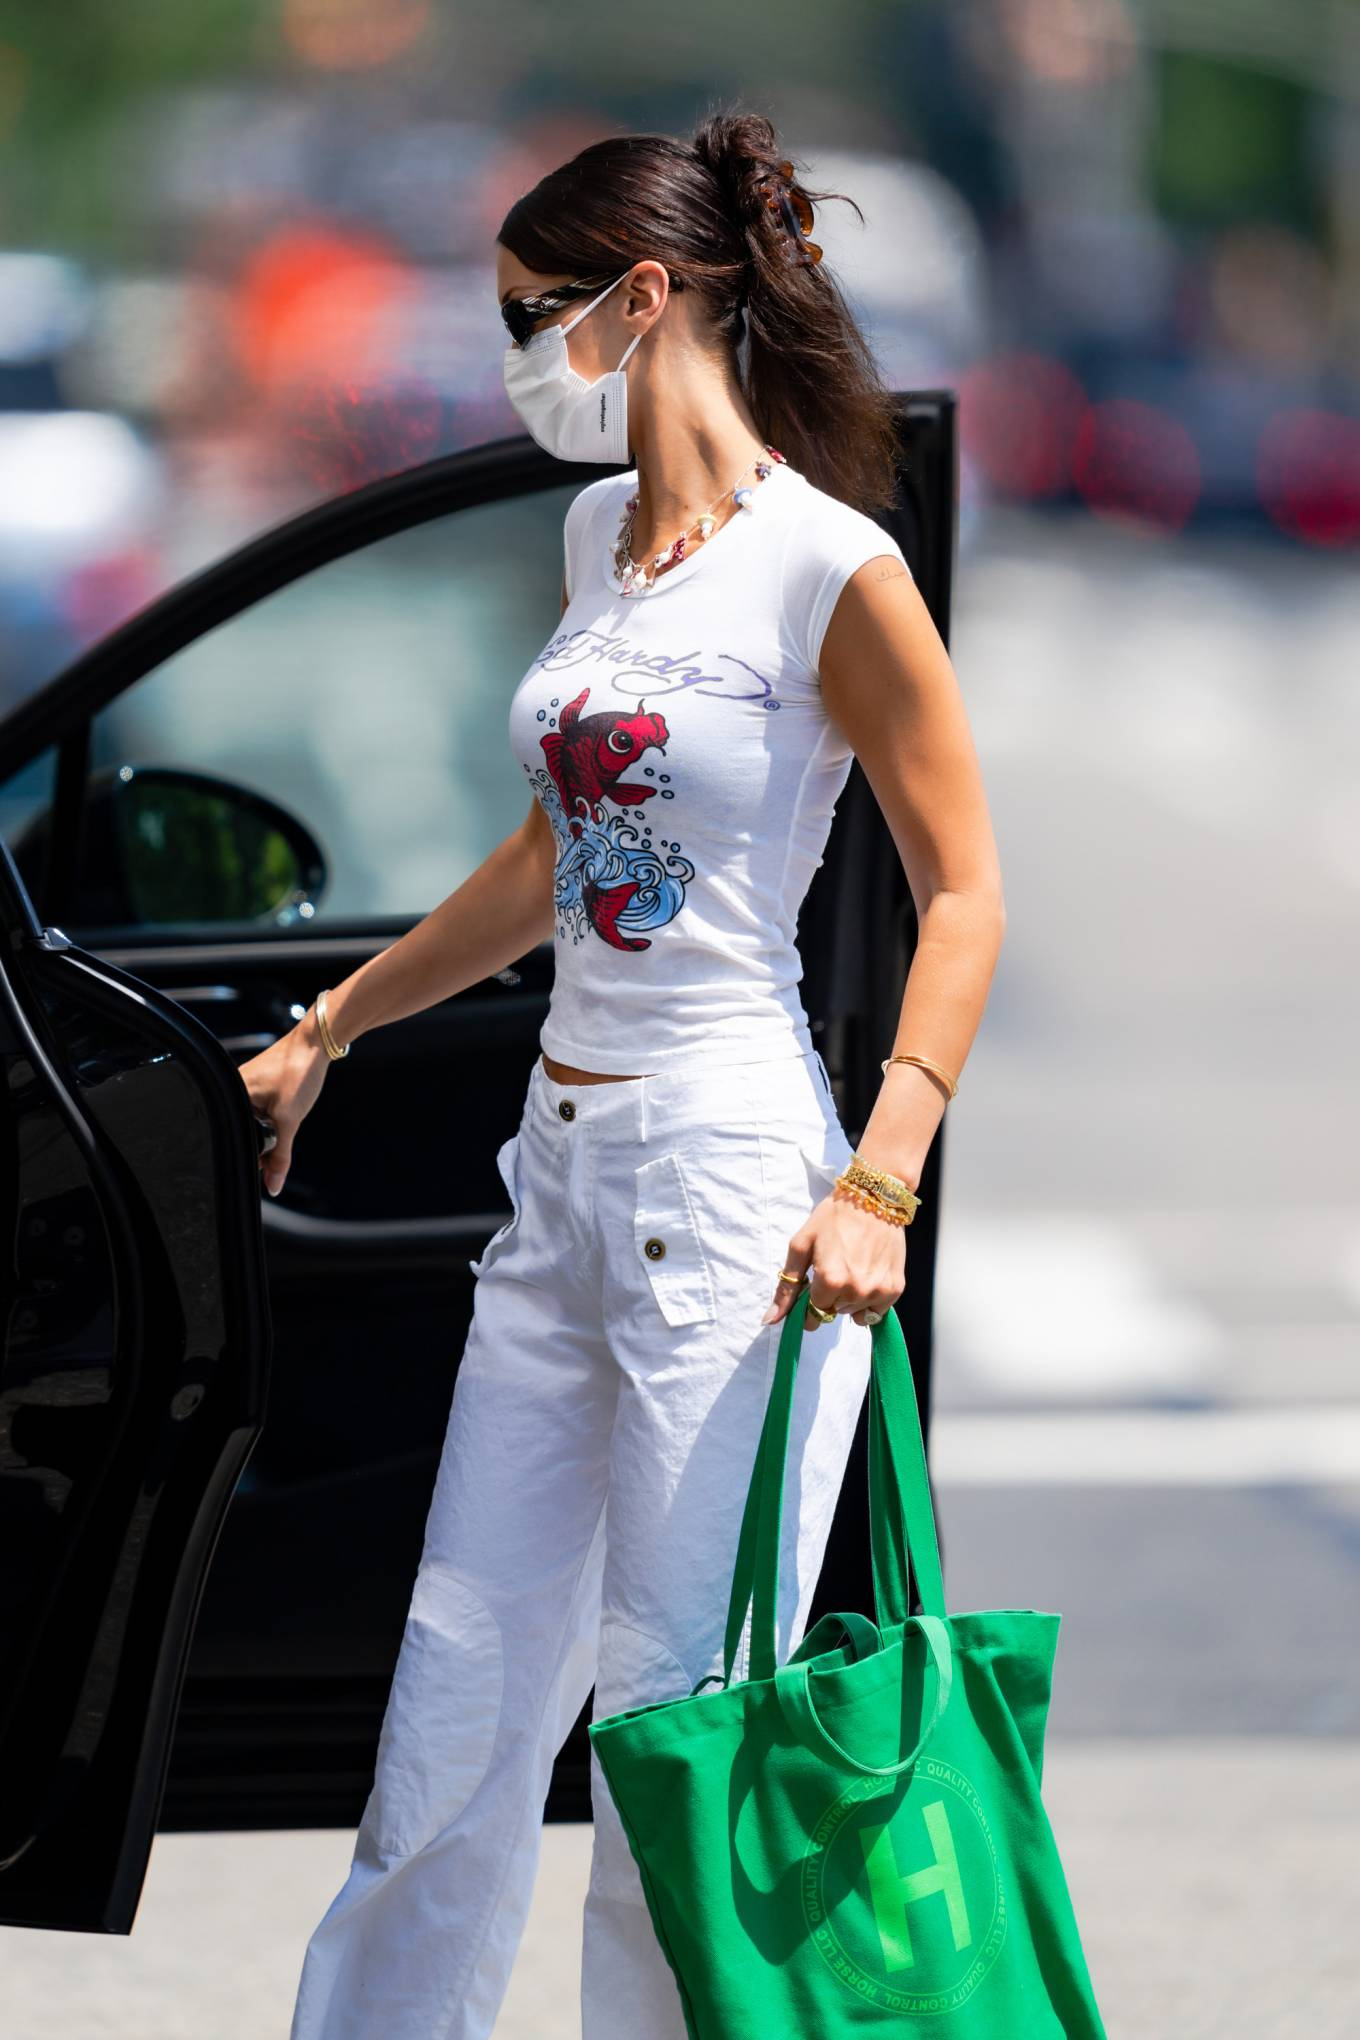 Bella Hadid donning brand logo white leather lace-up sneakers